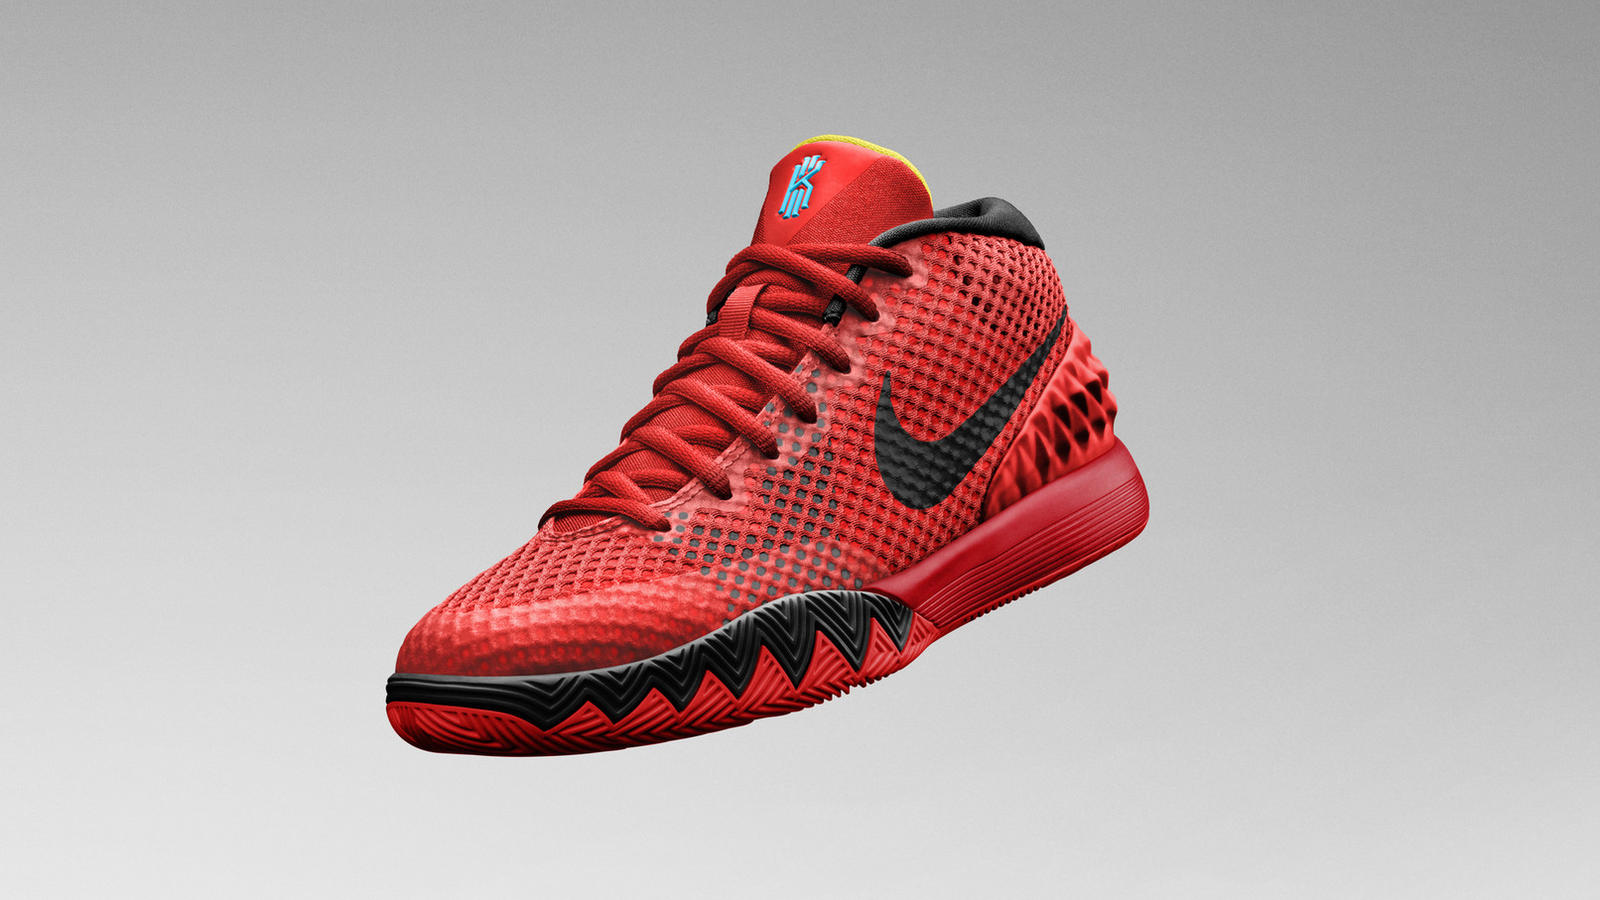 buy popular b292a 09dee ... promo code for kd s for kids kyrie irving shoe 271f9 01a32